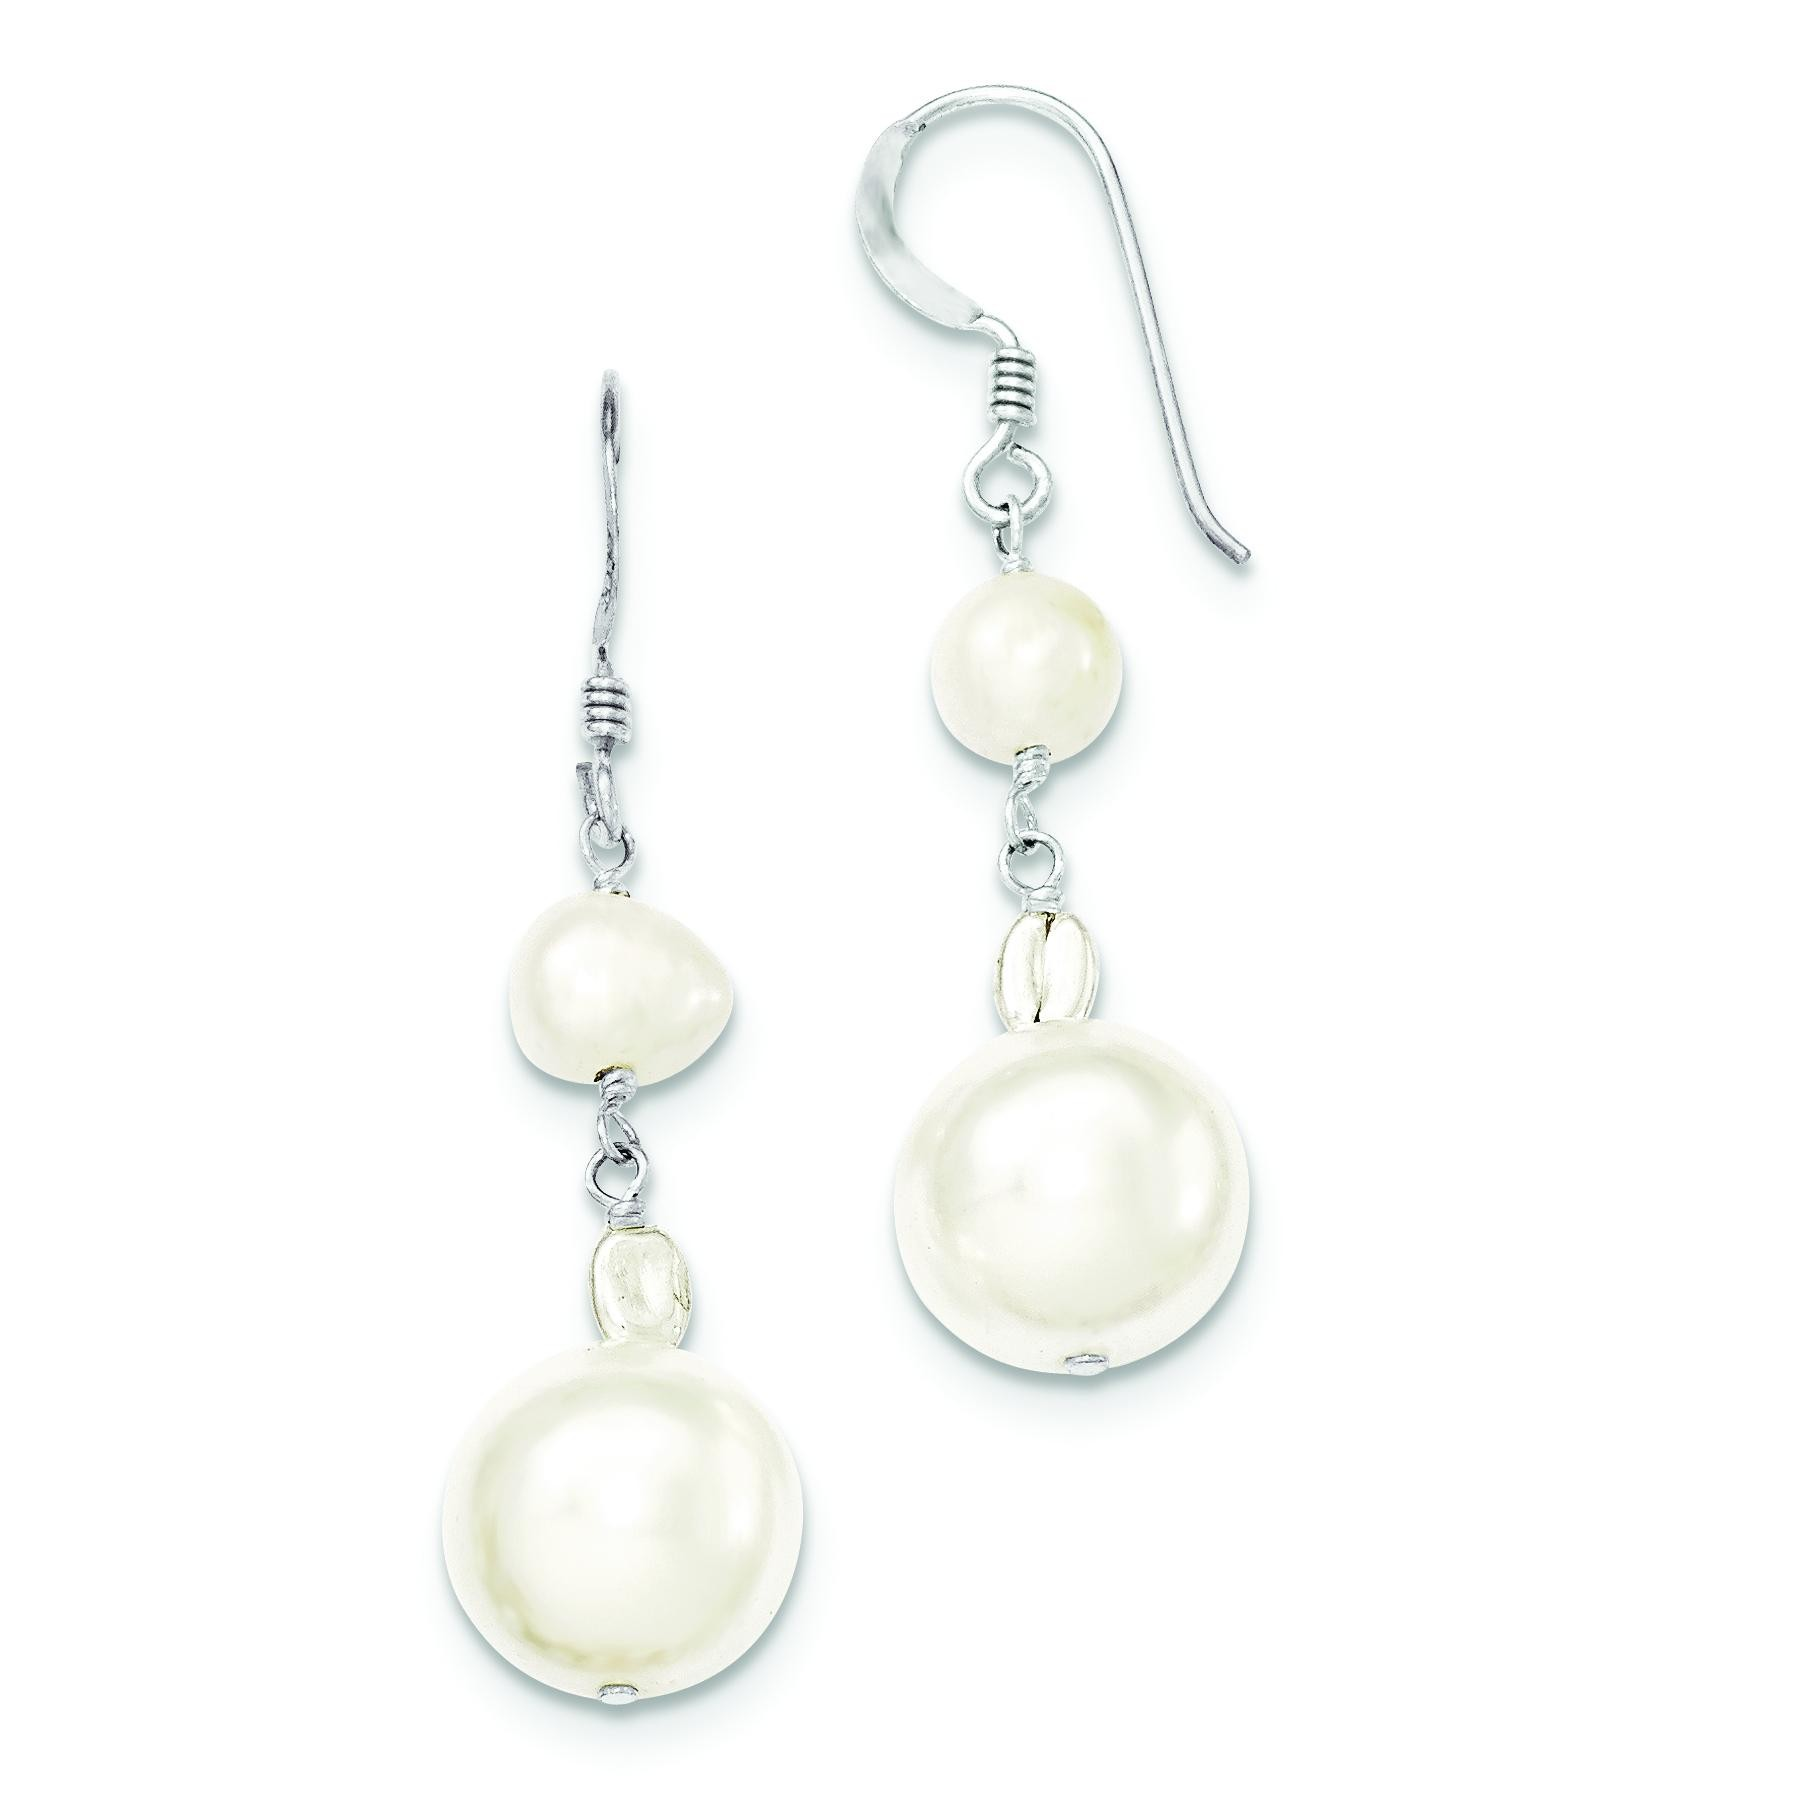 Freshwater Cultured White Simulated Pearl Earrings in Sterling Silver